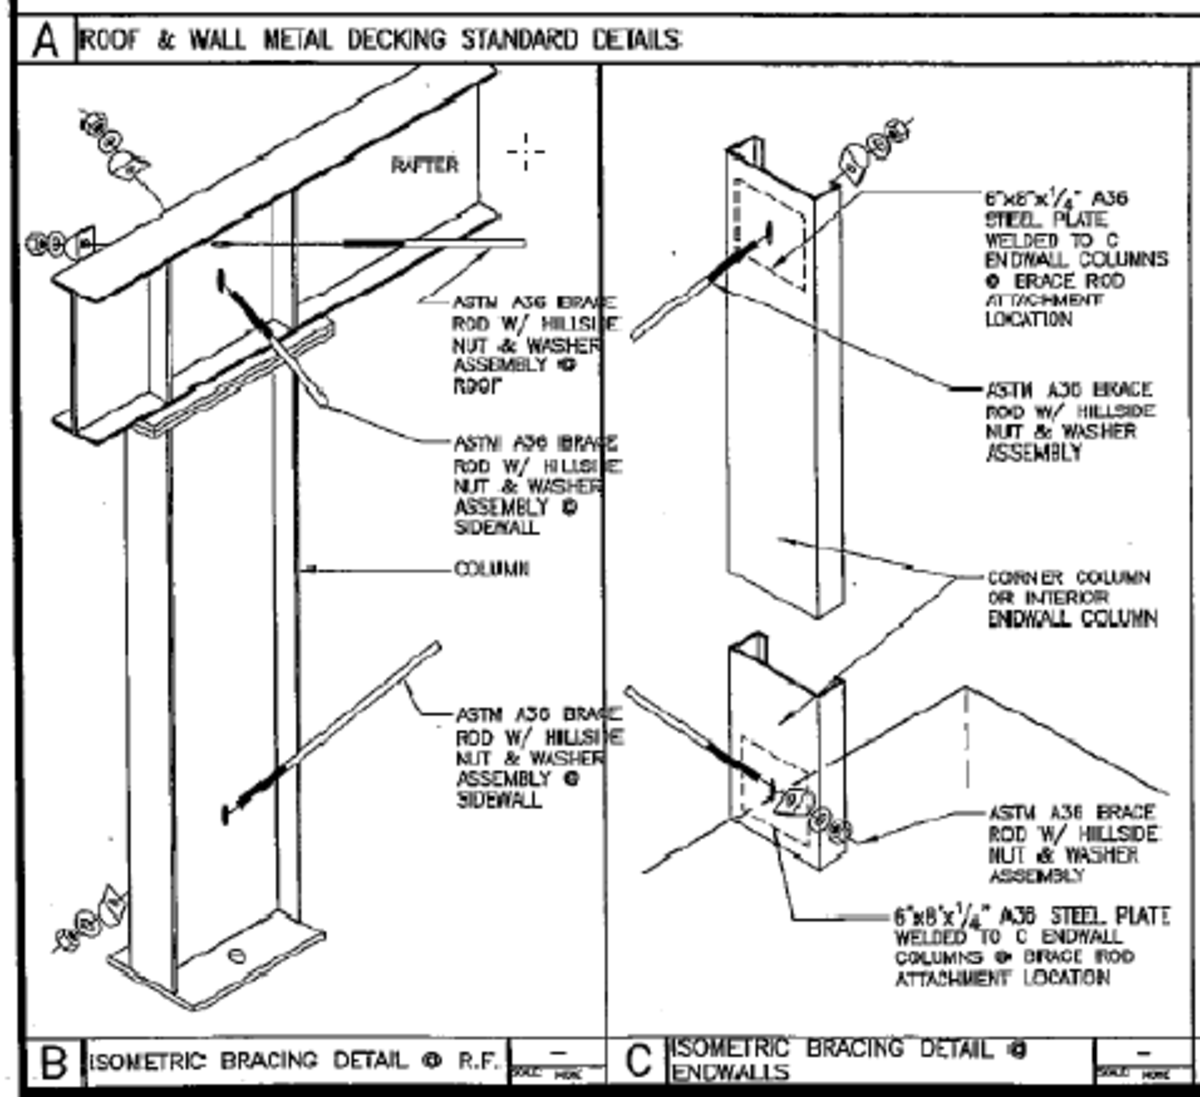 Standard wall brace details. These are from a set of plans drawn by Chris Sanders, one of the best in California.